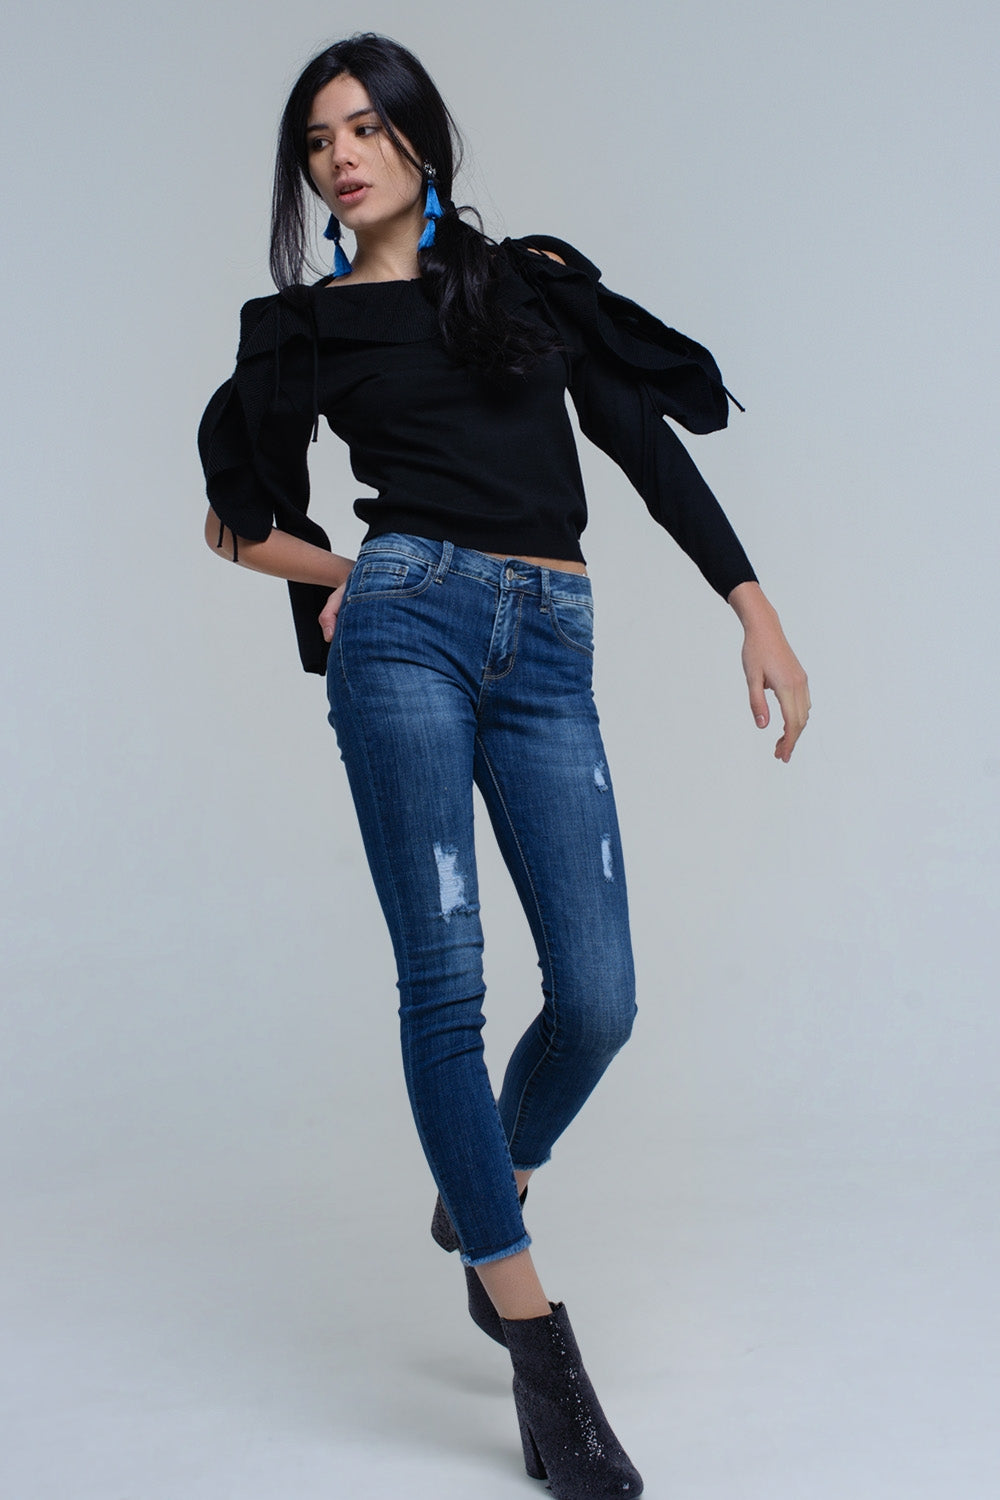 Sweater With Tied Ruffle Sleeves In Black-Women - Apparel - Sweaters - Pull Over-Product Details Crop sweater in black. It has a round neck, a round hem and long sleeves. There are ribbons on the sleeves that start on the shoulder line and finish tied on the wrists. It is in ribbed woven fabric.-Keyomi-Sook